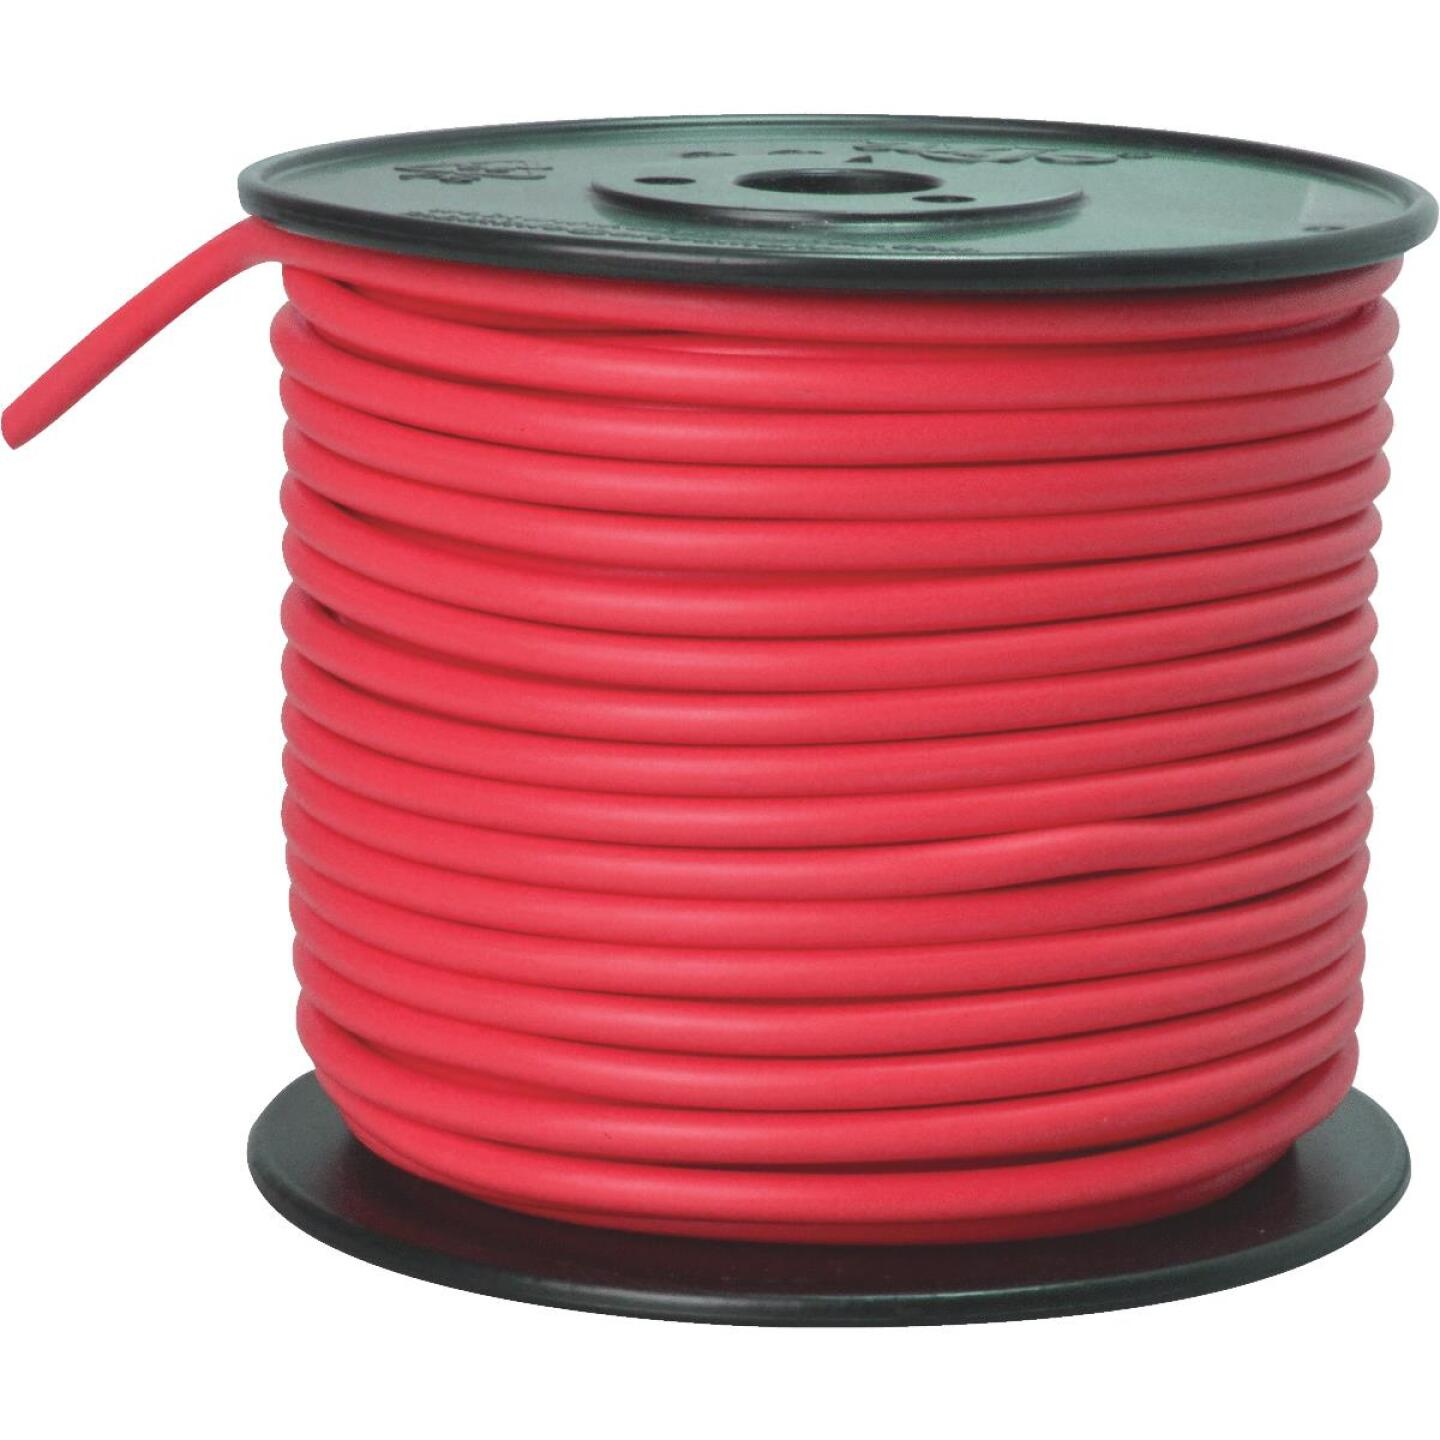 ROAD POWER 100 Ft. 10 Ga. PVC-Coated Primary Wire, Red Image 1